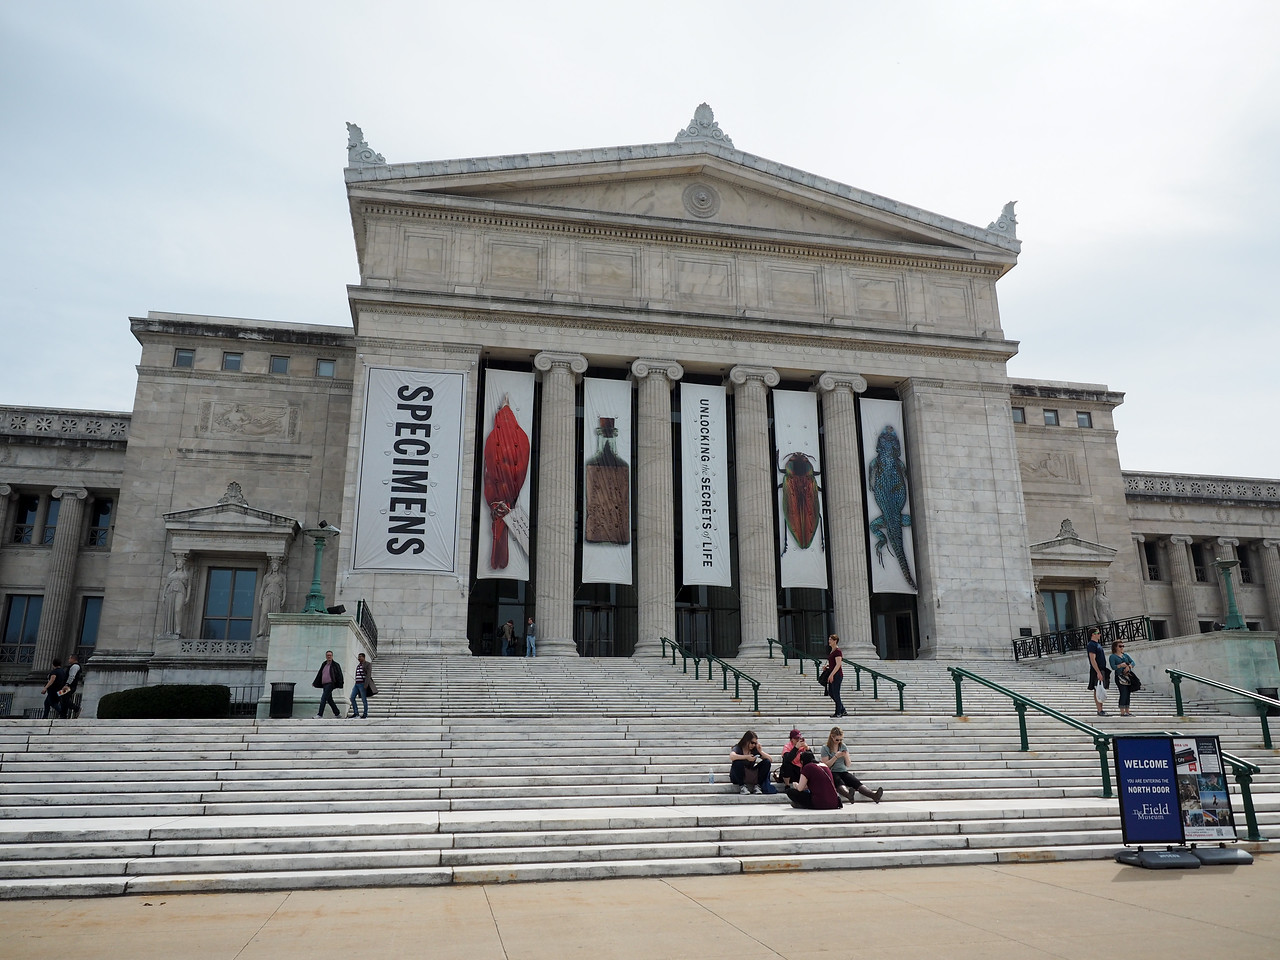 Field Museum in Chicago